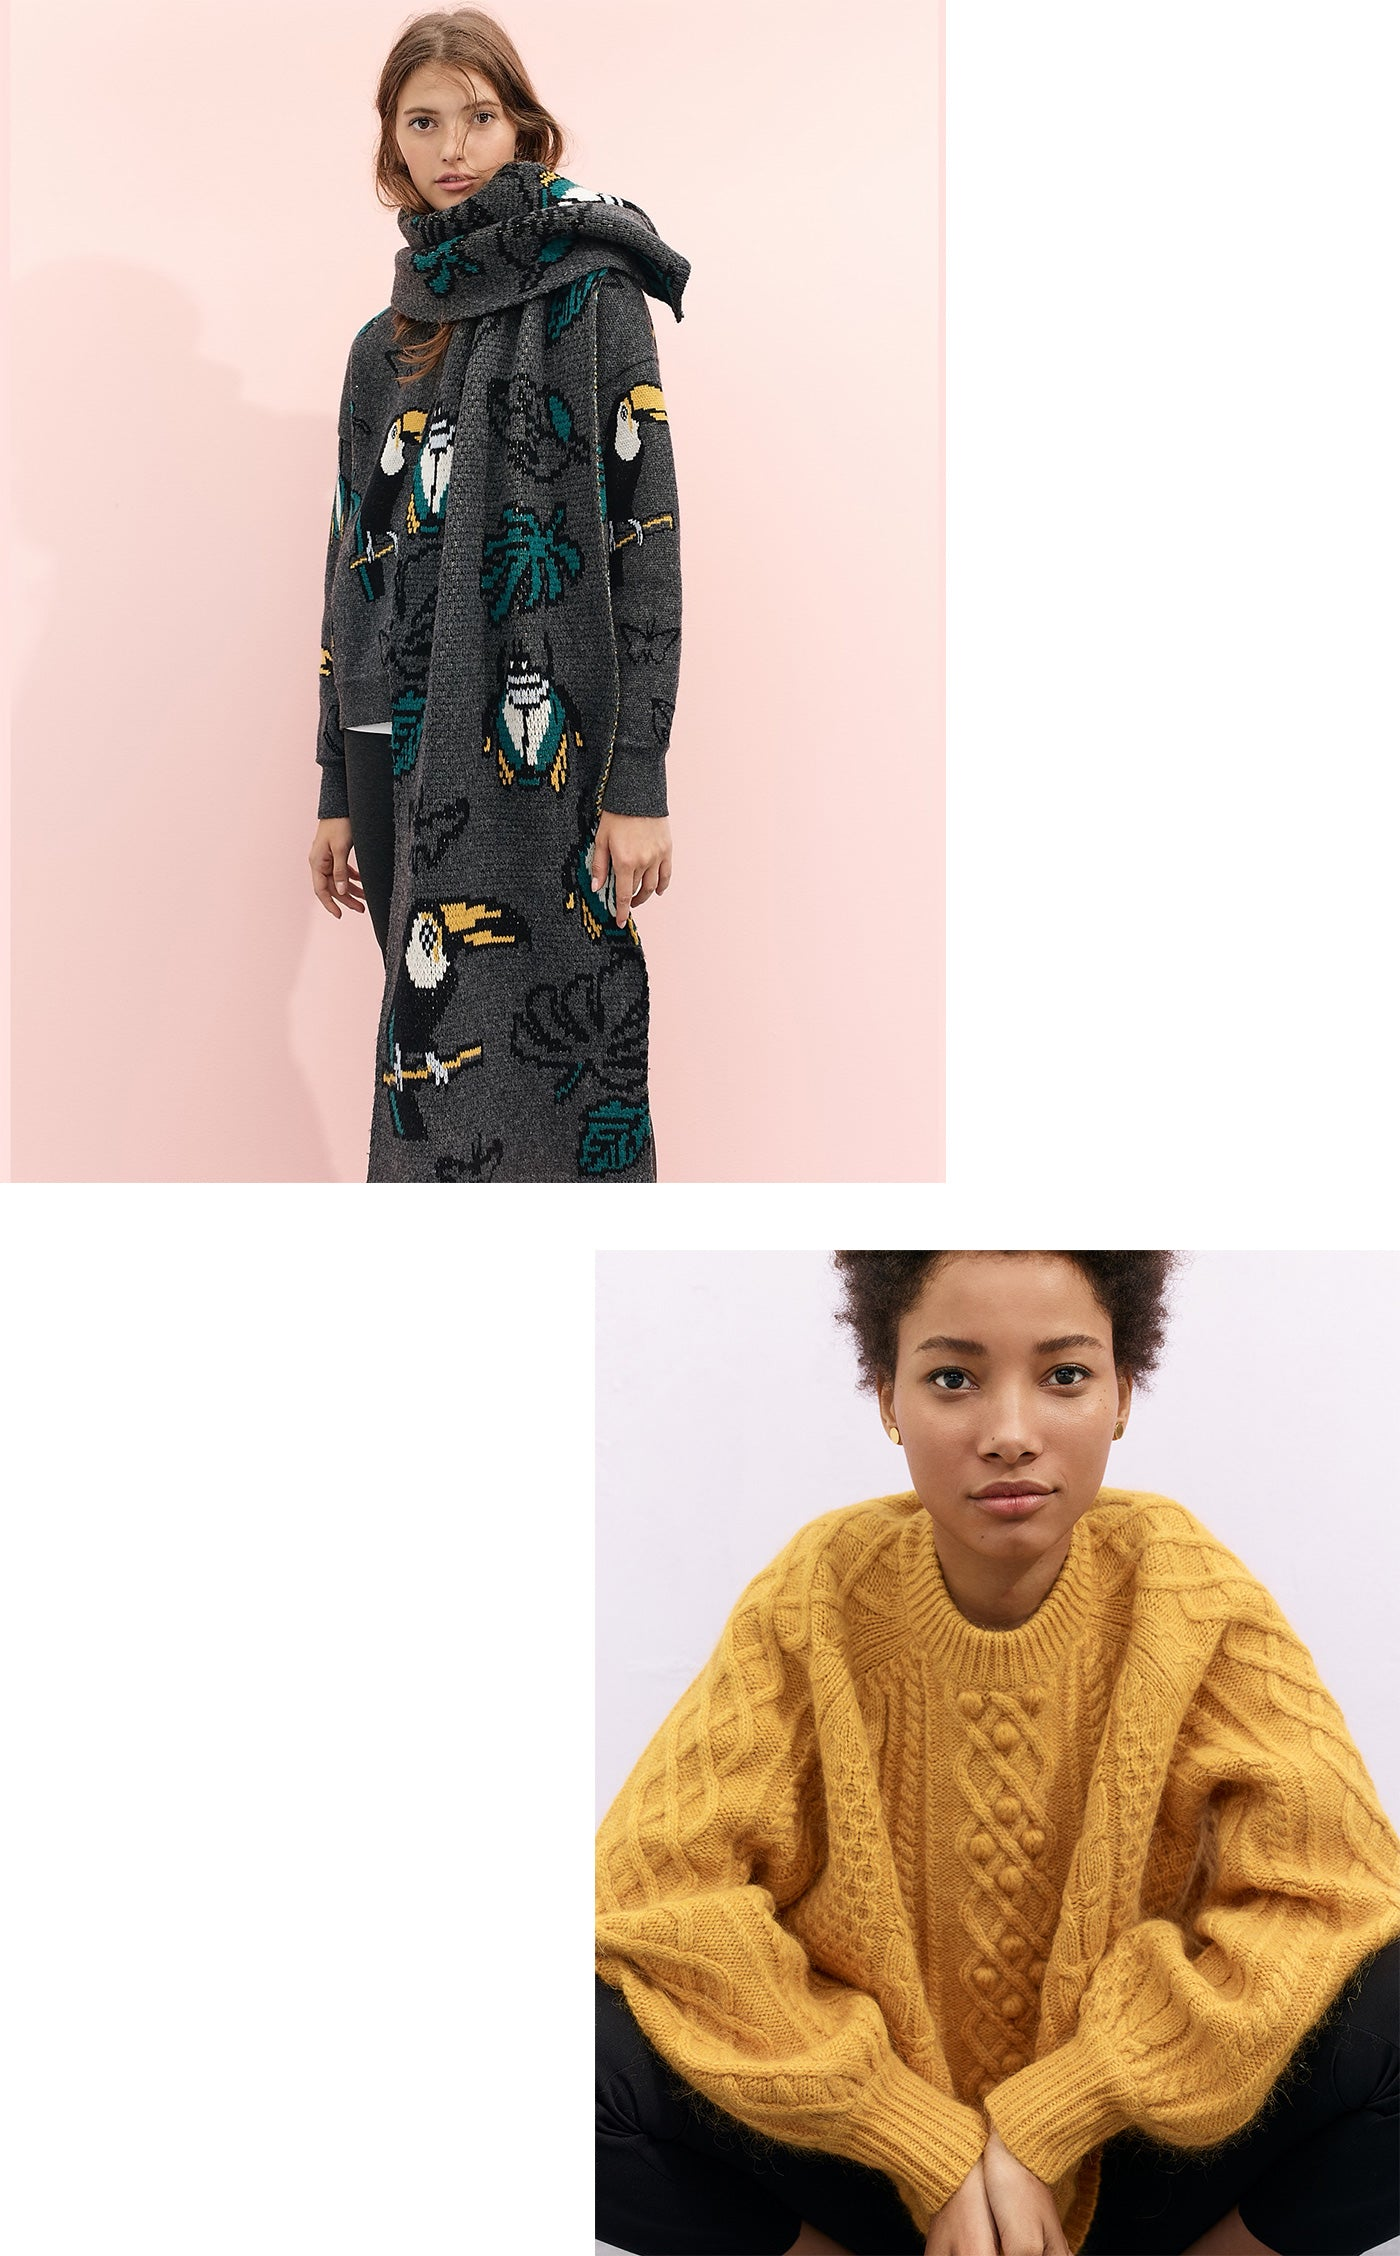 a0b23c082fce Introducing our exclusive line of quirky-cool knits with J.Crew! Shop the  collab now on jcrew.com | Photos courtesy of J.Crew © 2018